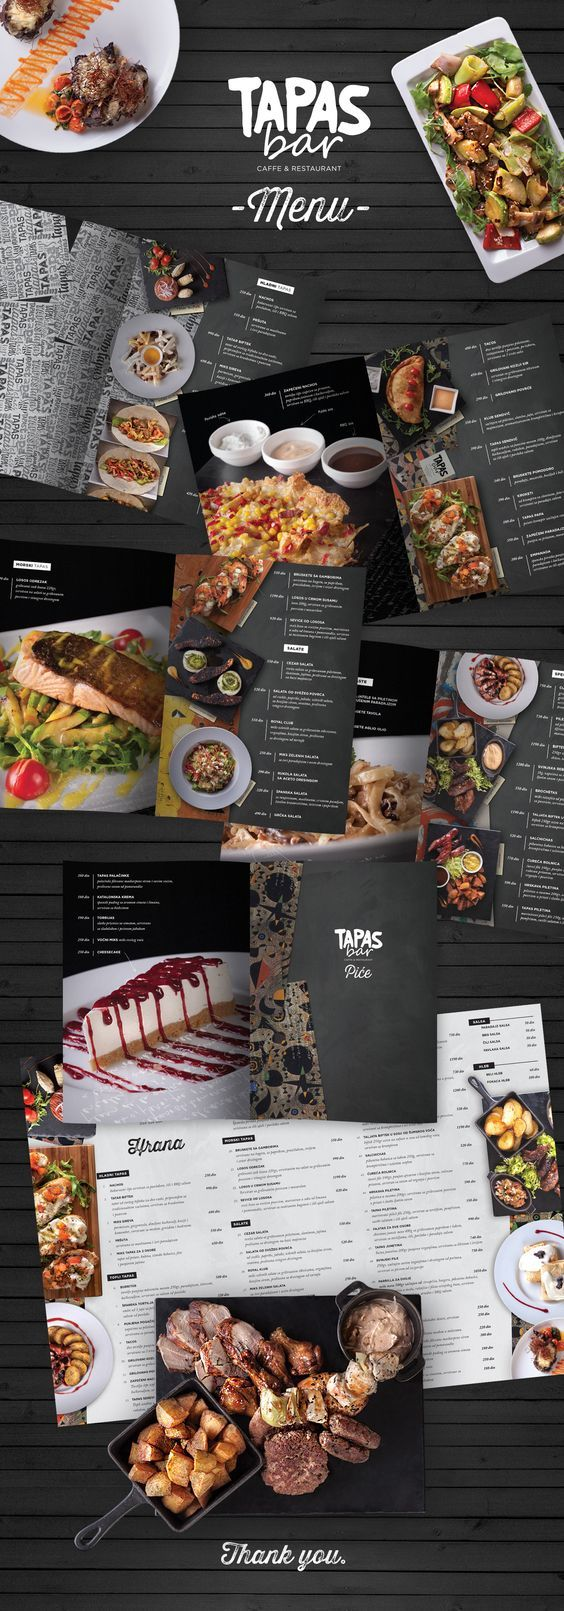 Best 25 restaurant menu design ideas on pinterest menu for Tapas menu template